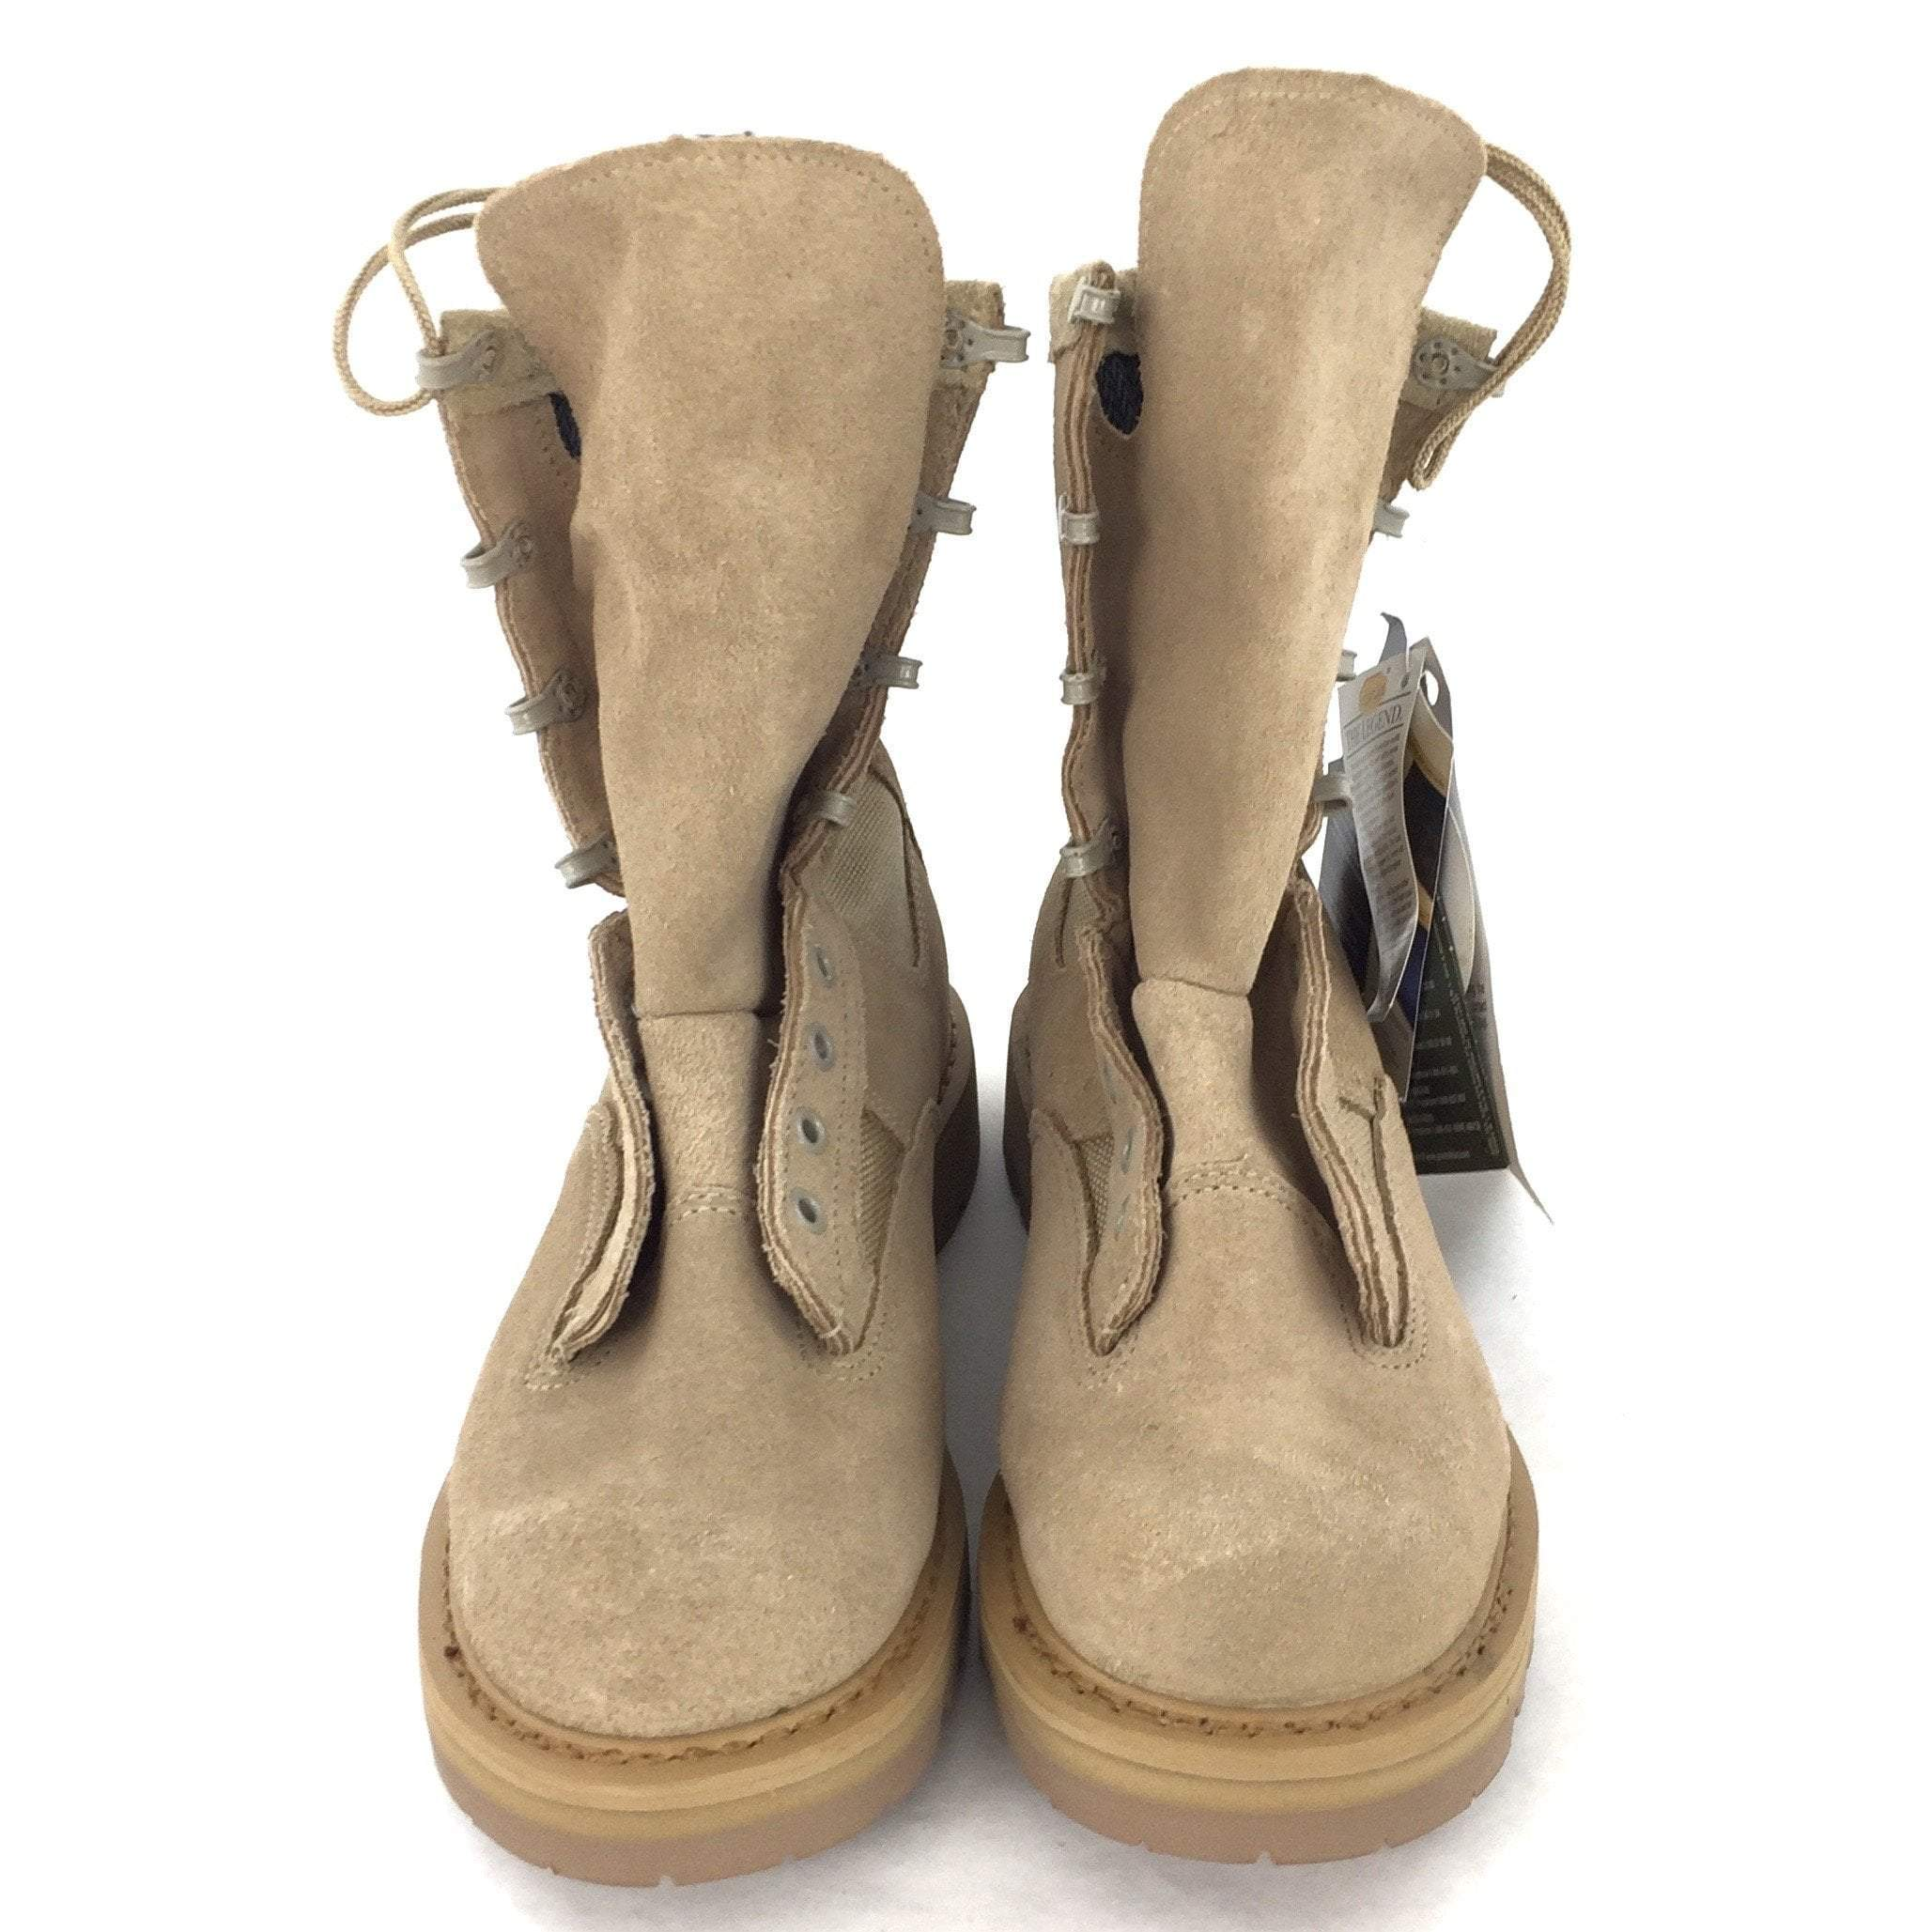 Rocky Temperate Weather Combat Boots, Size 6XW Sand Tan, 790G